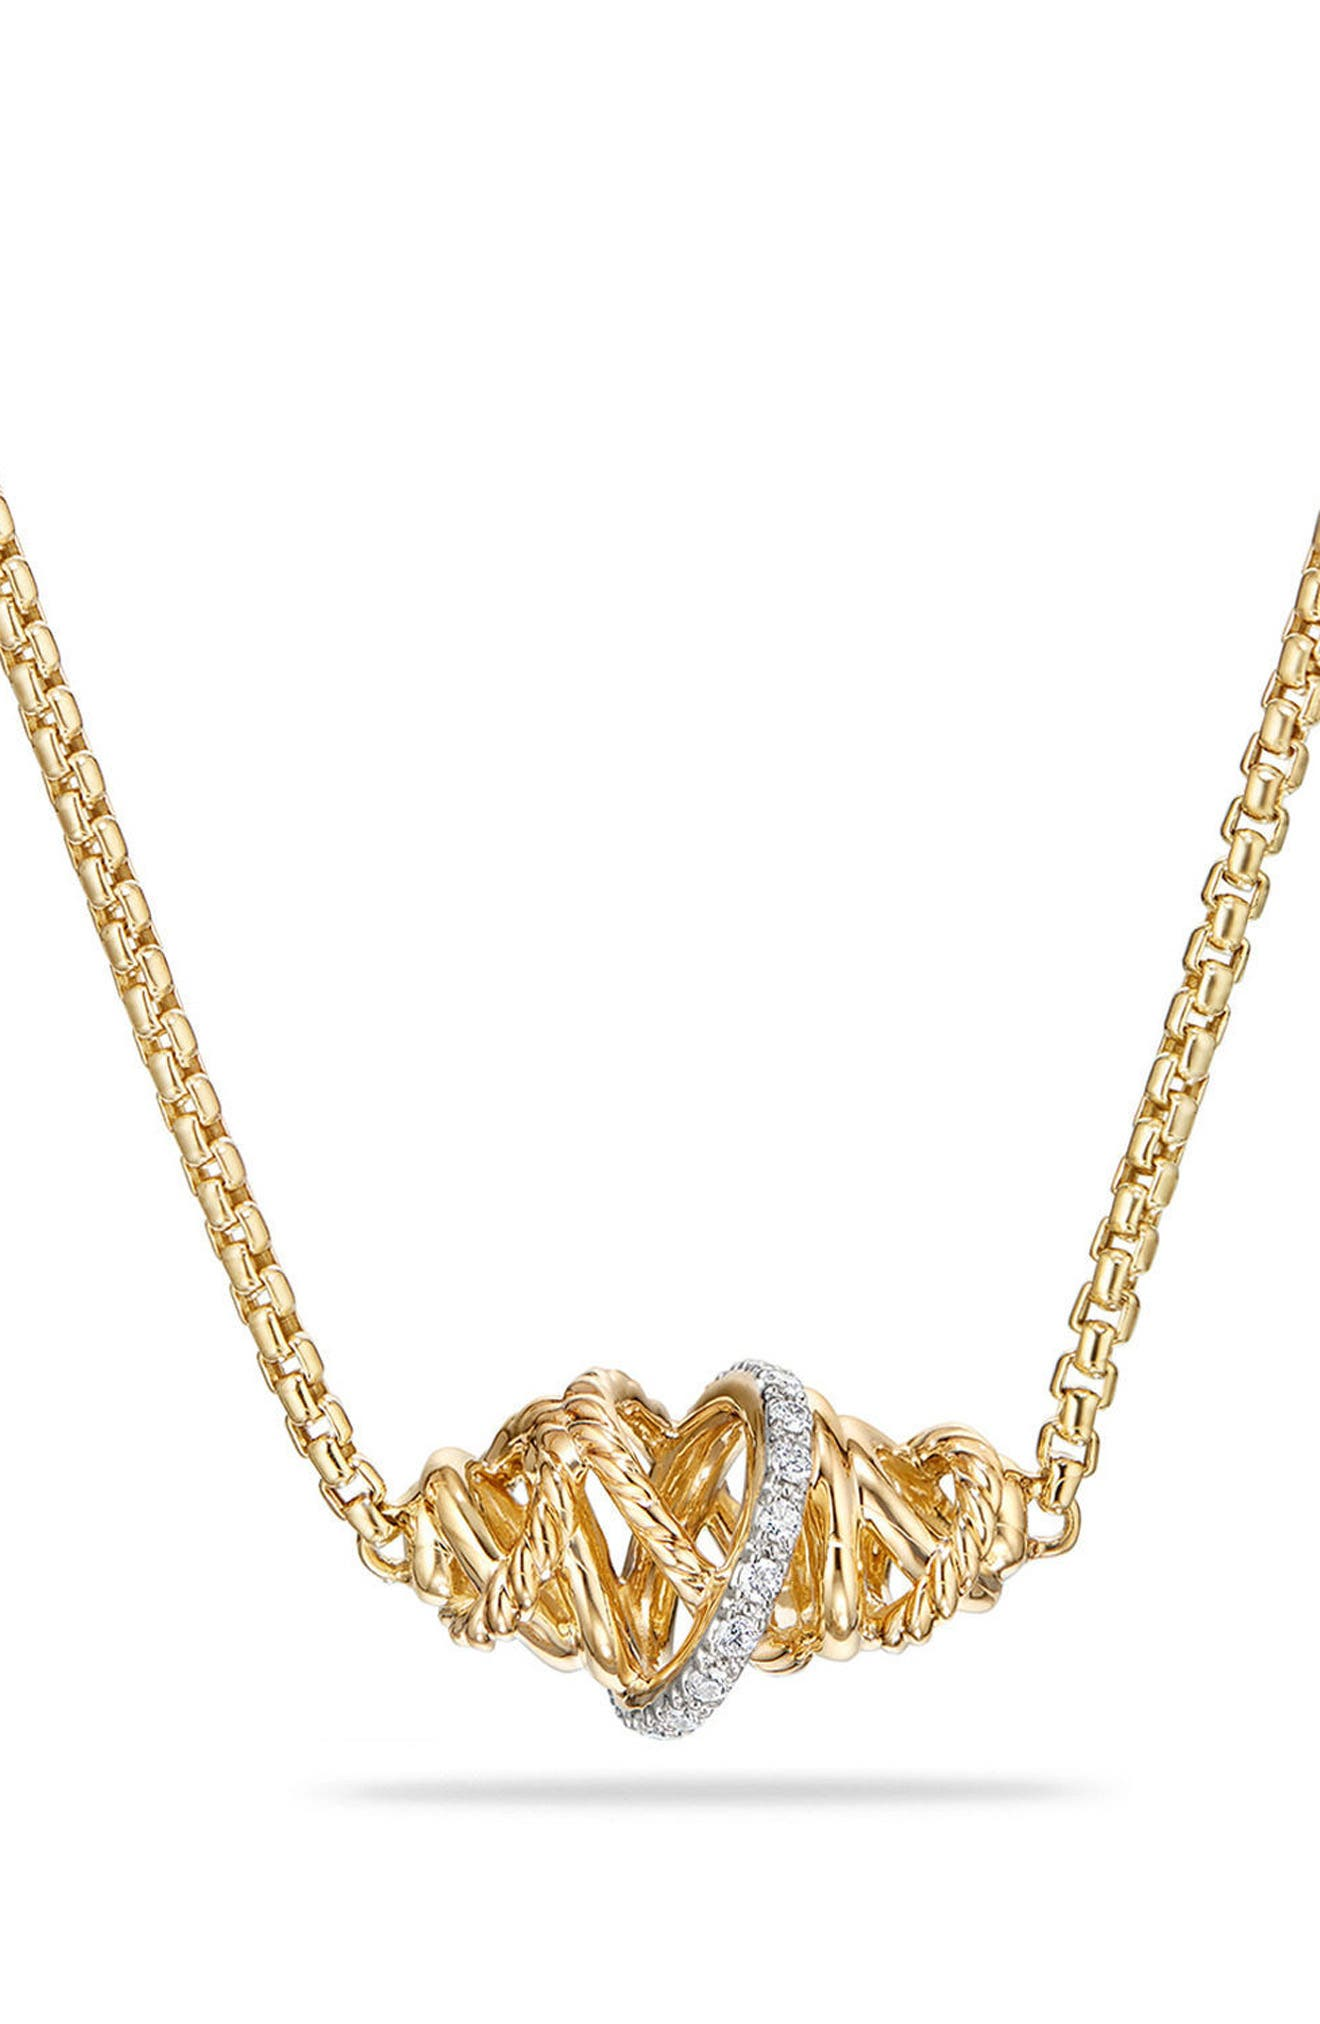 Crossover Station Necklace in 18K Gold with Diamonds,                             Main thumbnail 1, color,                             YELLOW GOLD/ DIAMOND